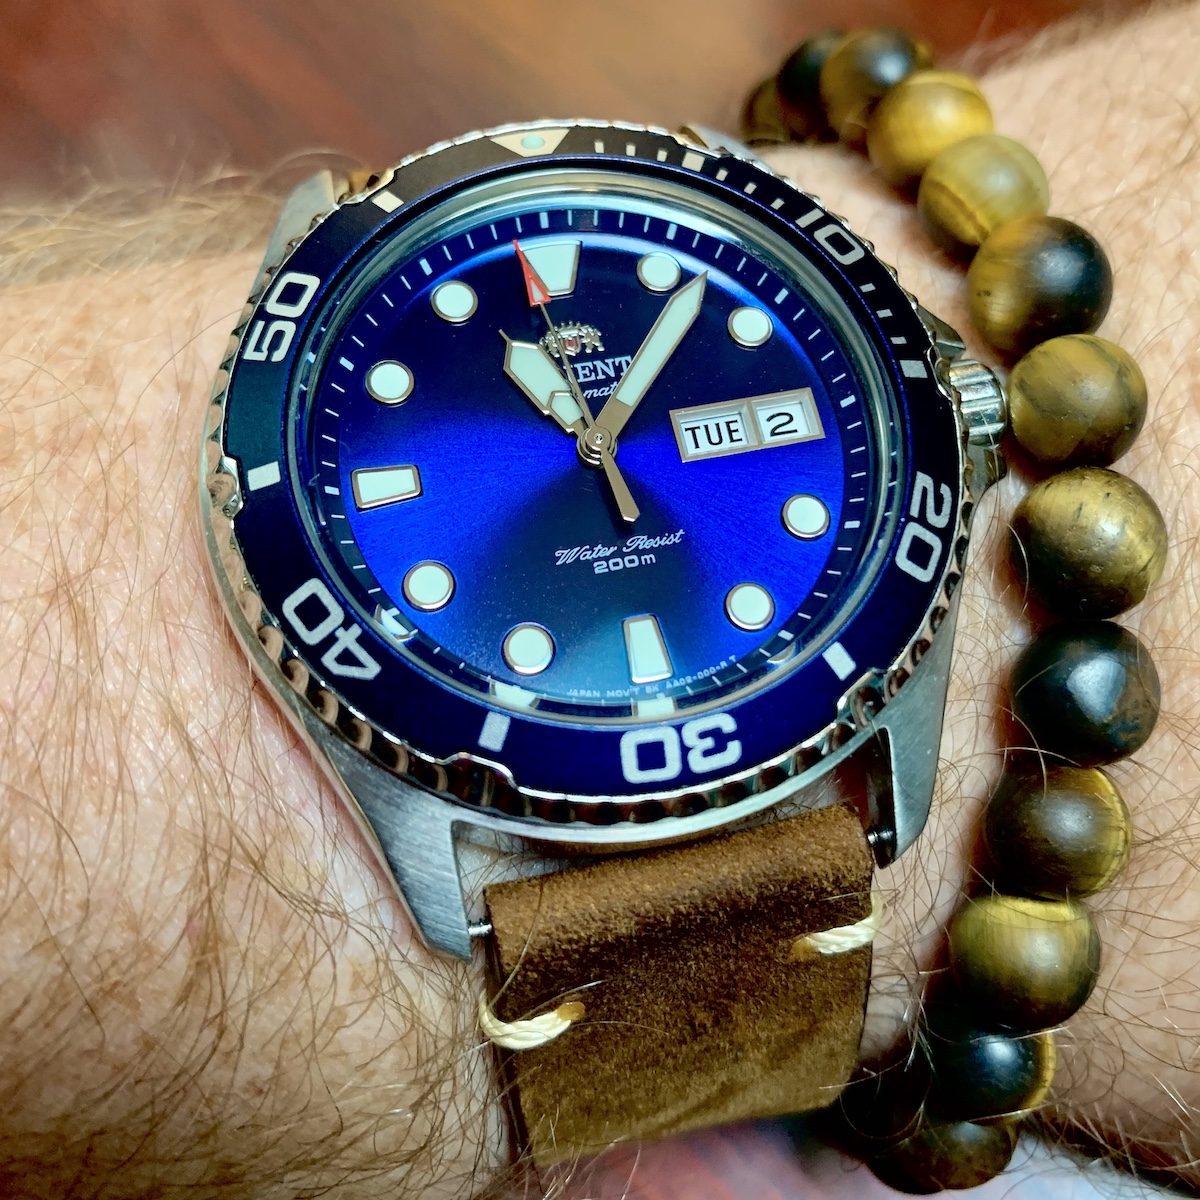 An Orient Ray II dive-style watch on a leather strap. The watch features a blue sunburst dial with applied indexes and a day/date complication. The watch case is stainless steel.